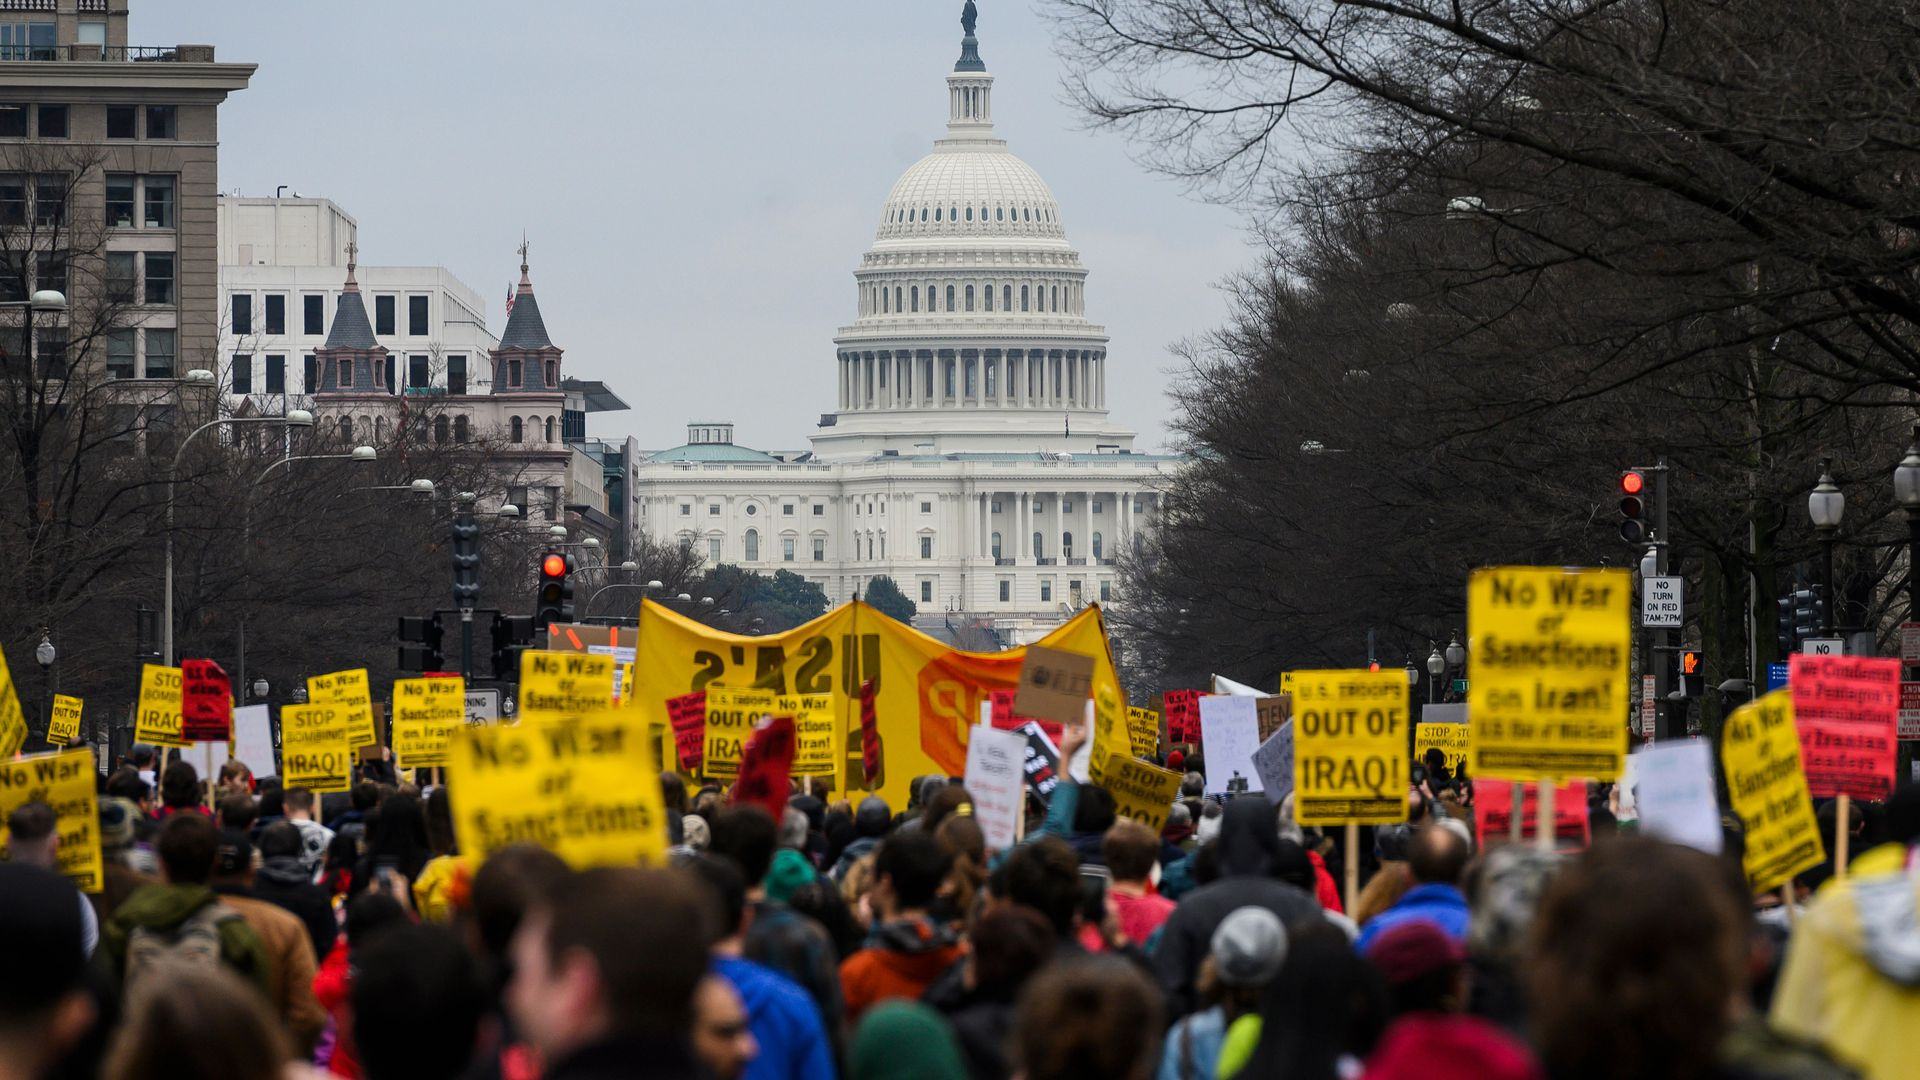 Anti-war activist march from the White House to the Trump International Hotel in Washington, DC